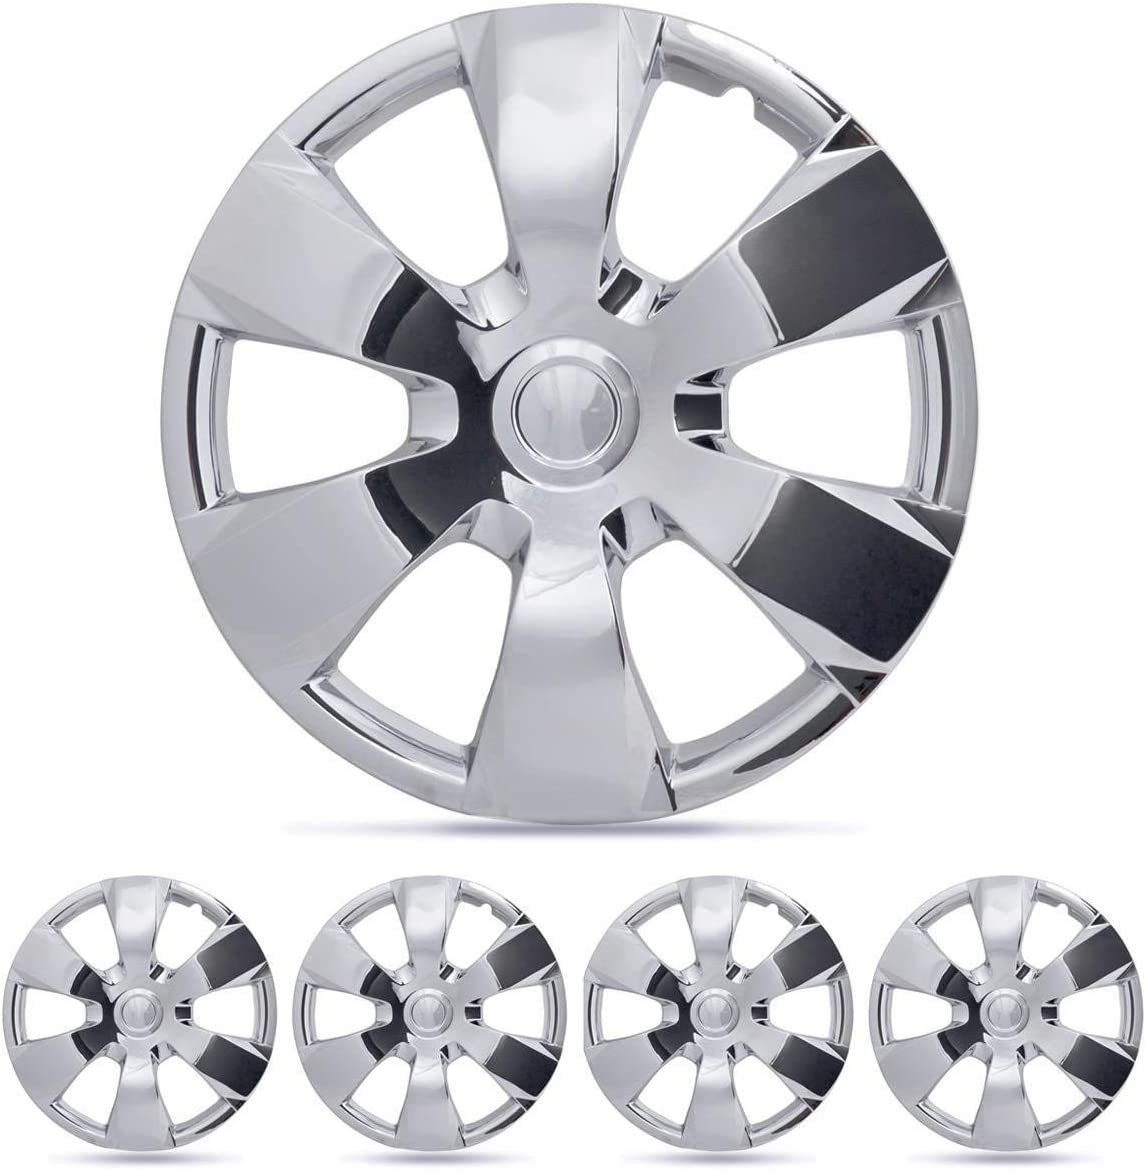 "BDK Wheel Guards – (4 Pack) Hubcaps for Car Accessories Wheel Covers Snap Clip-On Auto Tire Rim Replacement for 16 inch Wheels 16"" Hub Caps (Chrome Toyota Replica)"